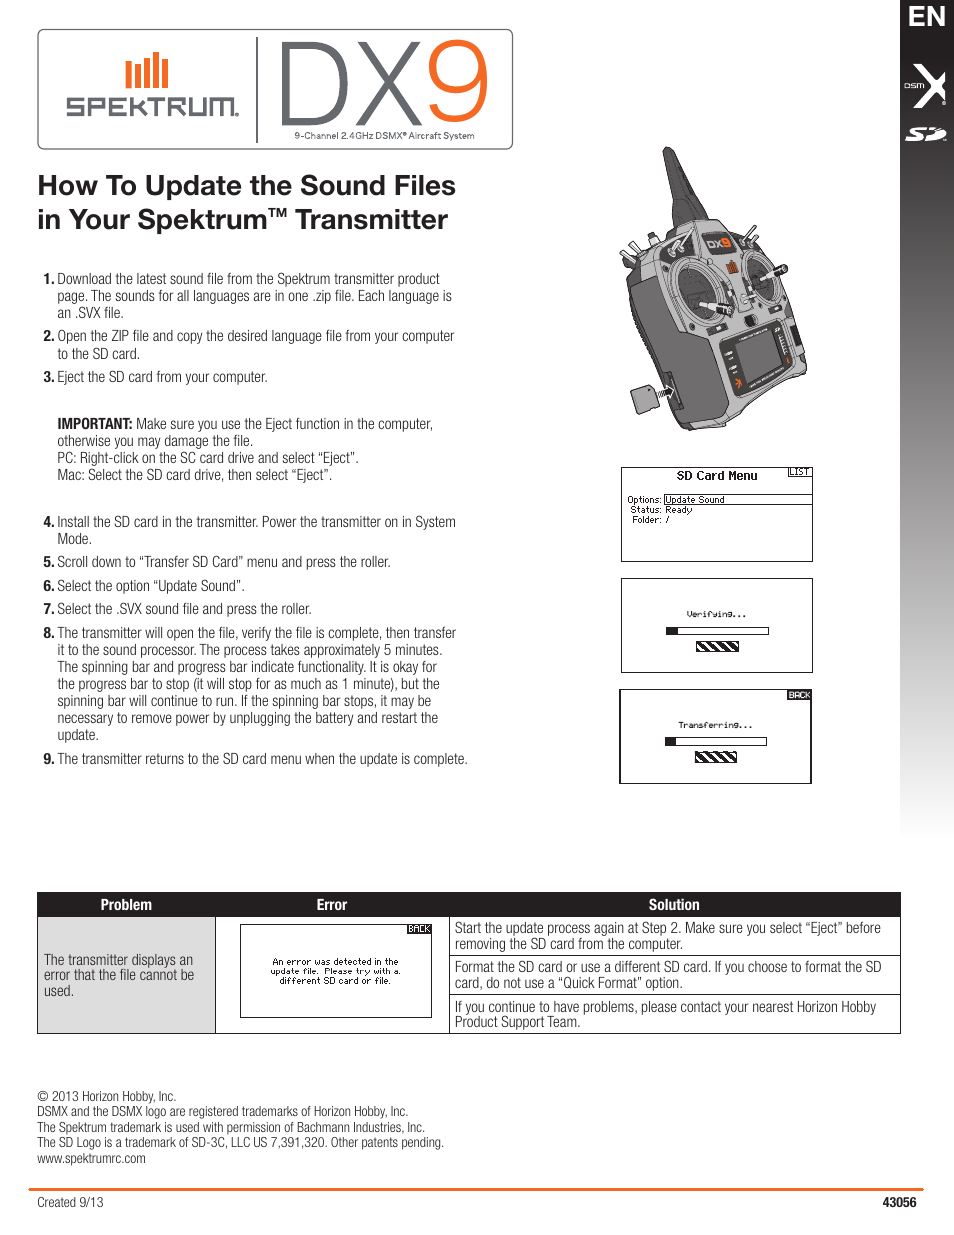 Spektrum SPMR9900 DX9 Sound Files User Manual | 1 page | Also for